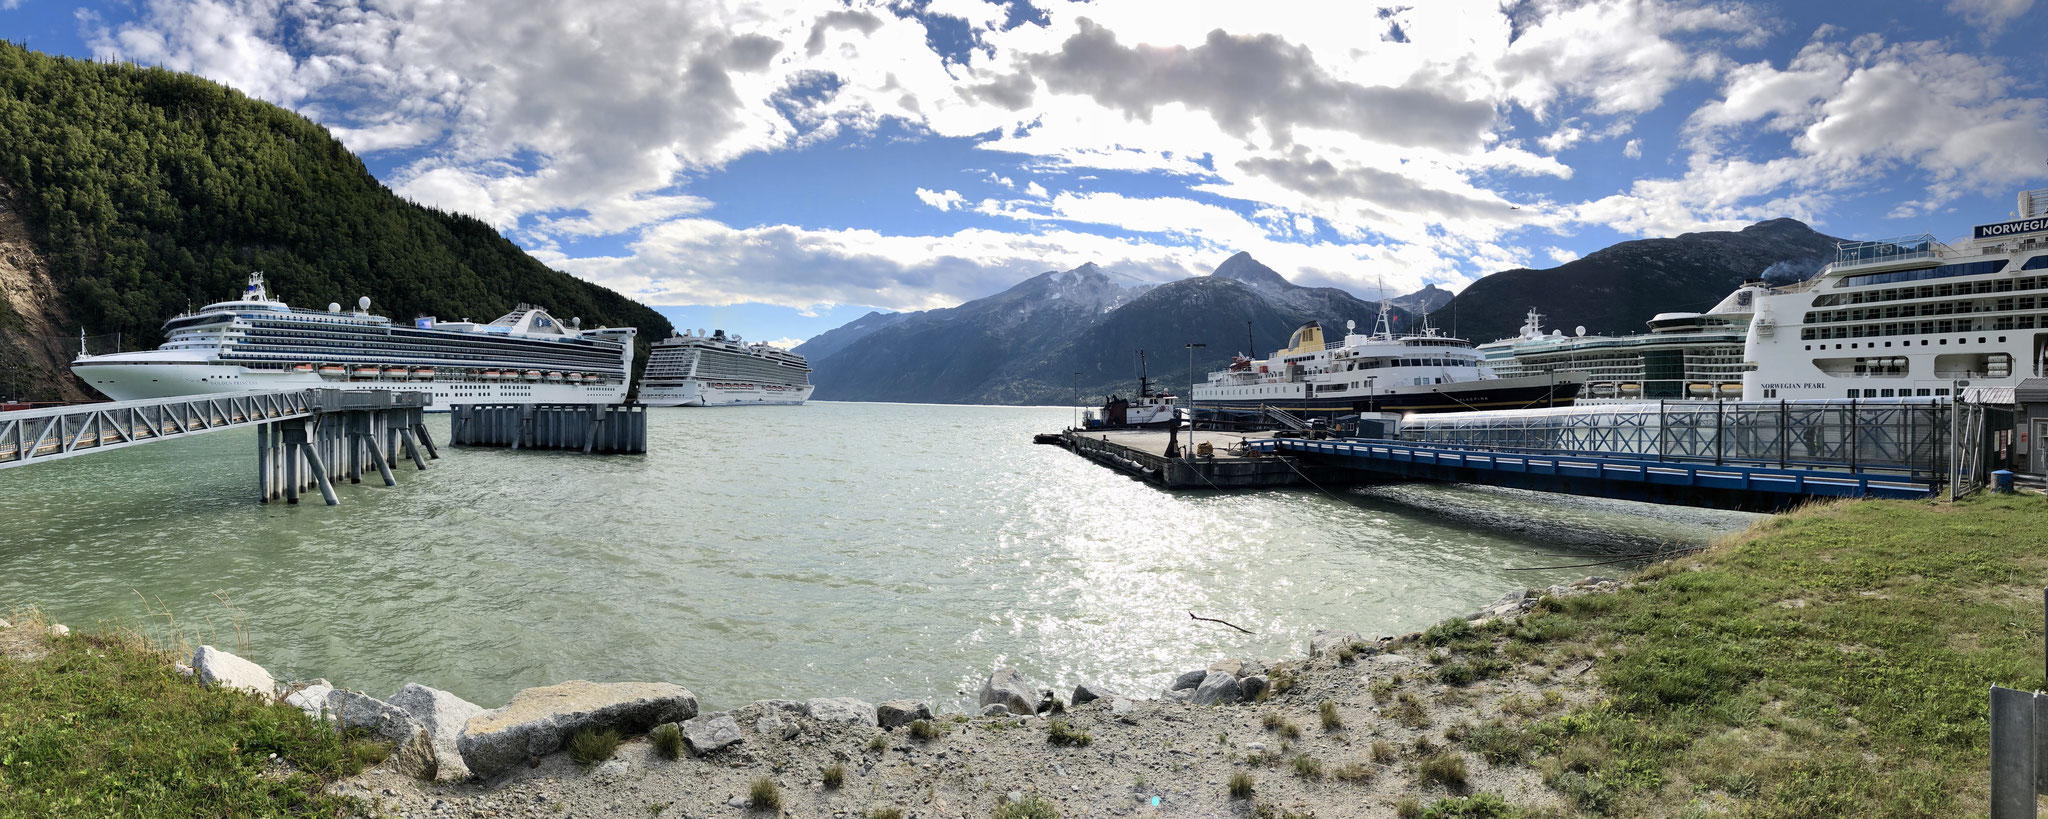 Our Ferry in Skagway Harbour